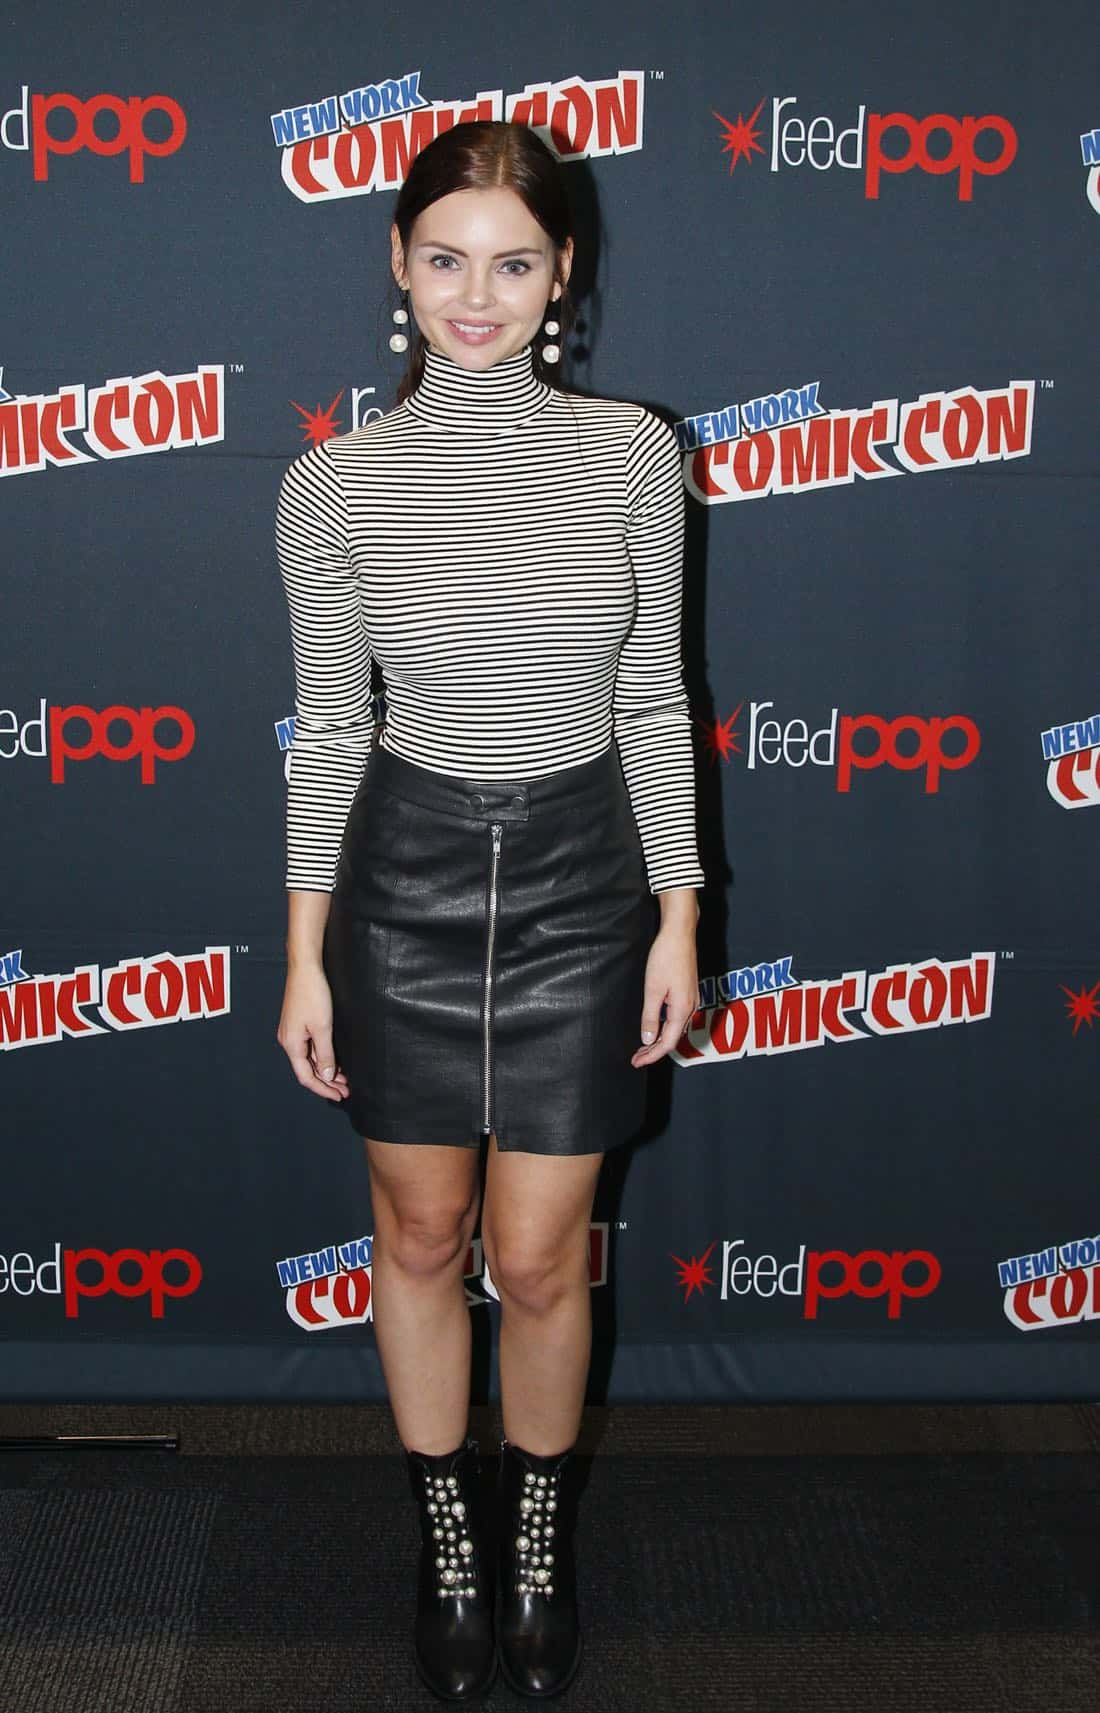 "NY COMIC-CON 2017 - SIREN - Freeform's genre programming was out in full force at this year's New York Comic Con on Saturday, October 7th with executive producers and cast from the hit series ""Shadowhunters,"" ""Beyond,"" and new original series ""Siren."" (Freeform/Lou Rocco) ELINE POWELL"